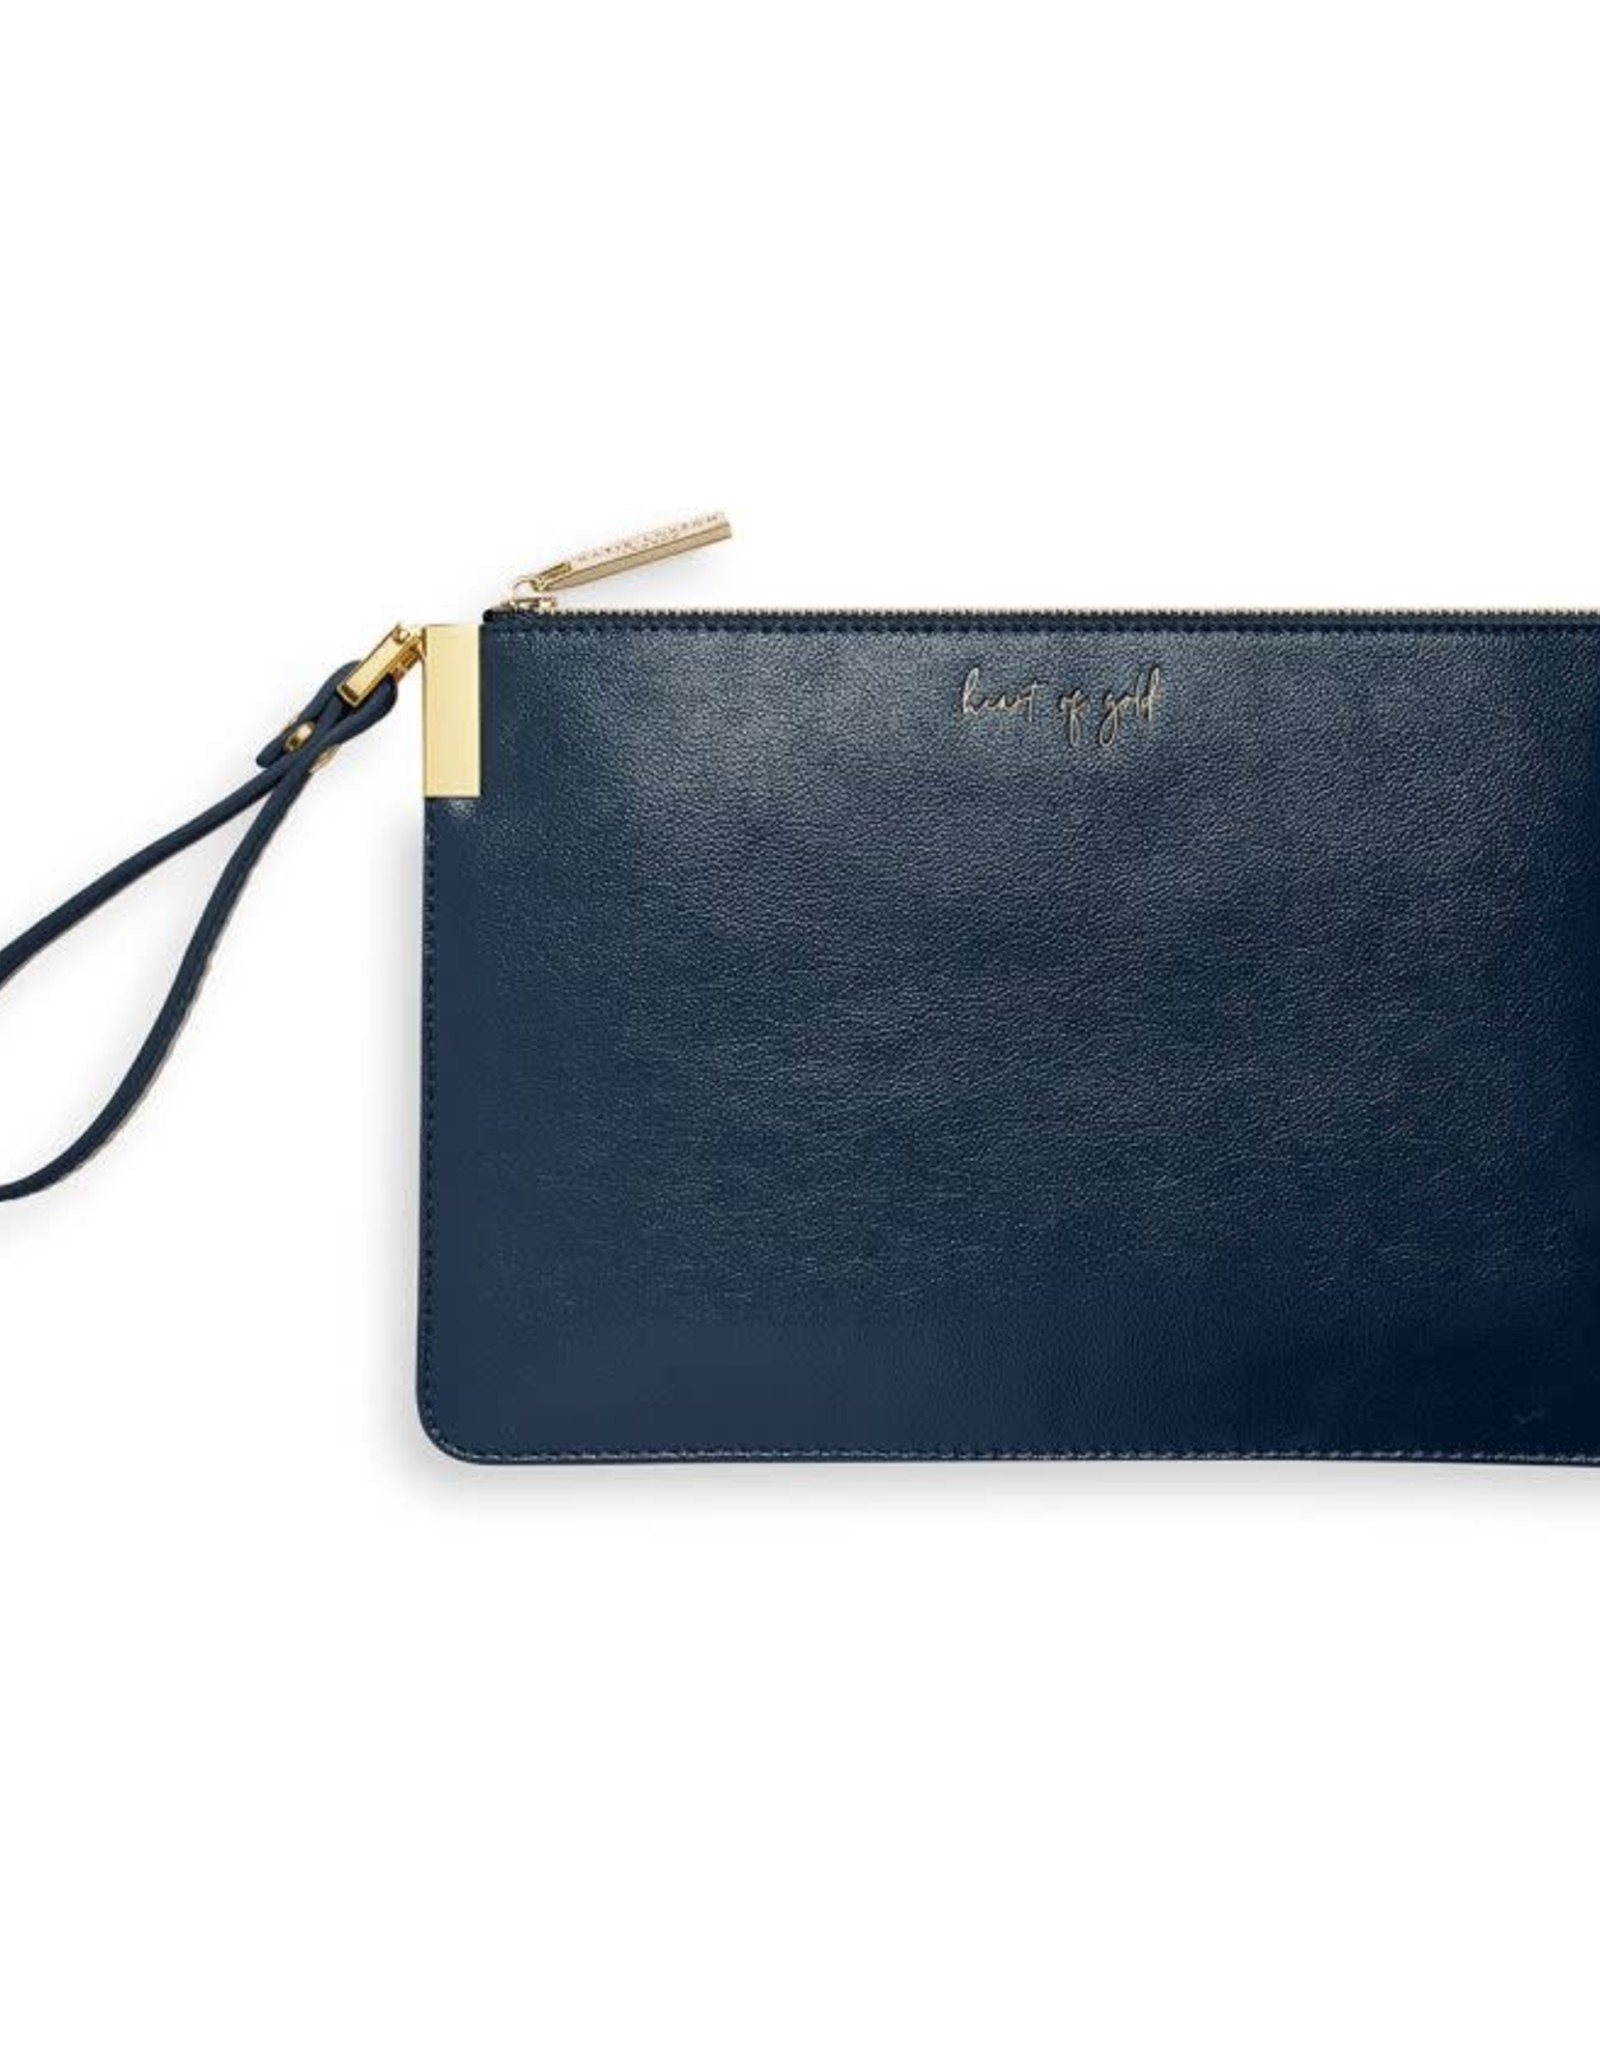 Katie Loxton Secret Message Clutch - Heart of Gold/To My Wonderful Mom Navy